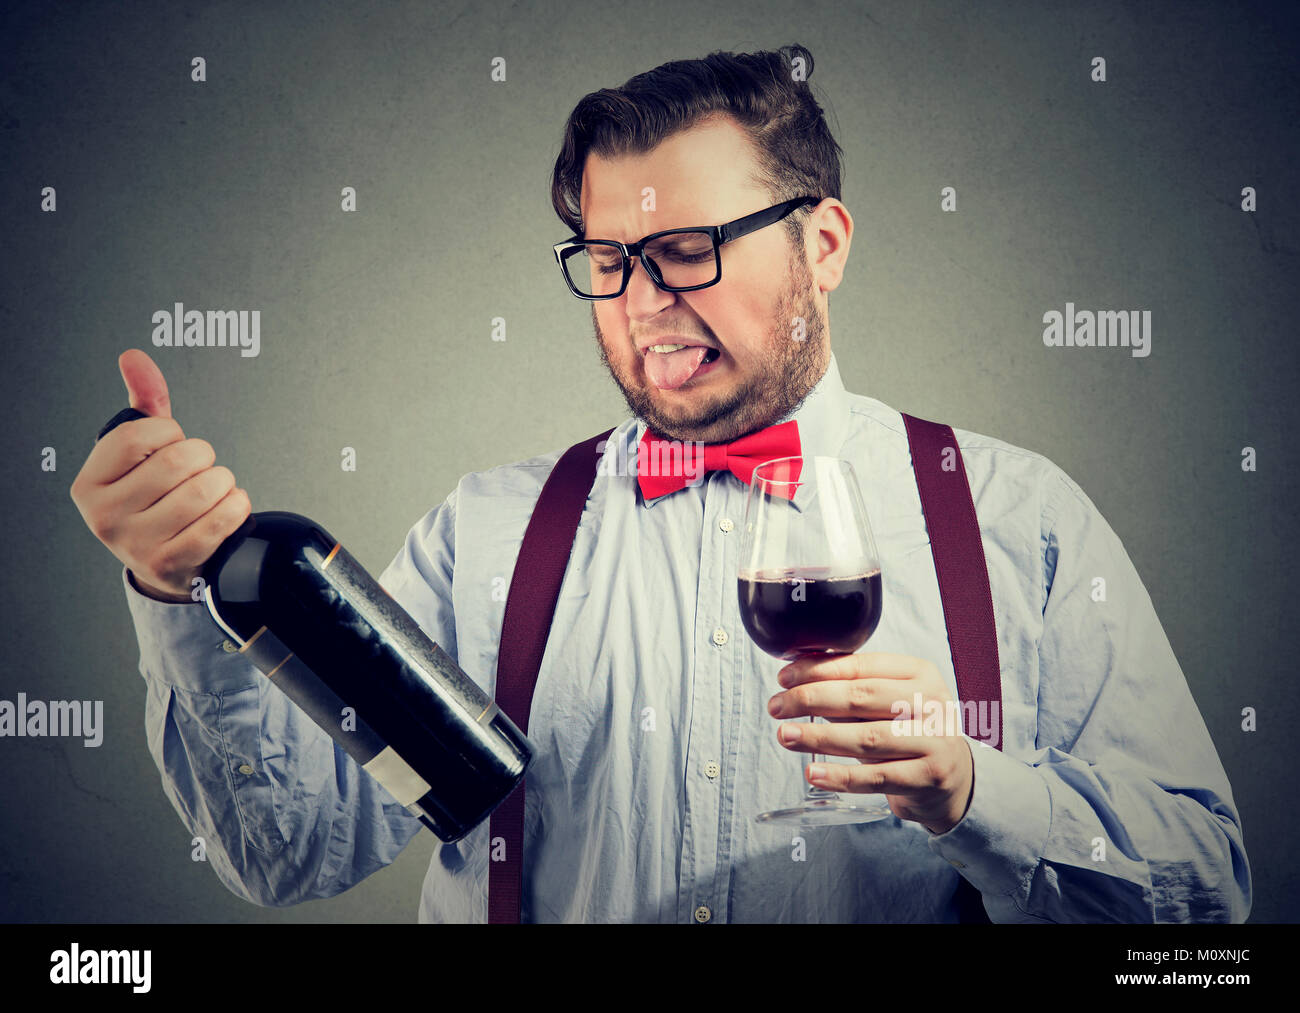 Man in bowtie trying wine and looking dissatisfied while exploring bottle. - Stock Image